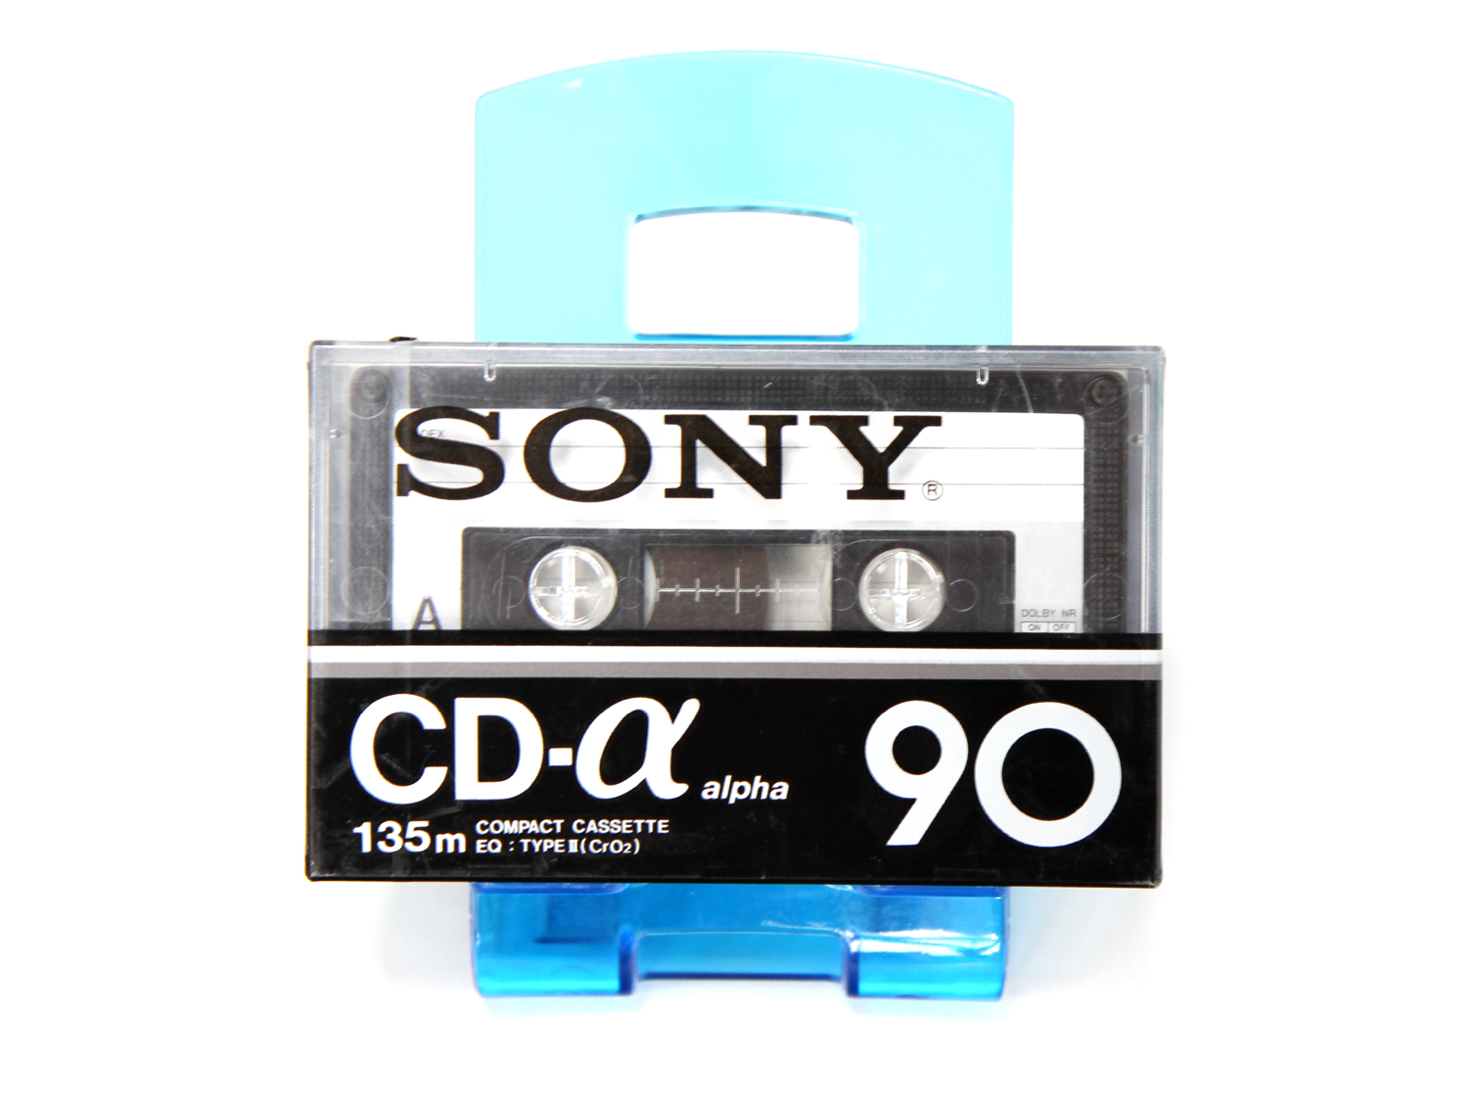 SONY CD-A90 Position Chrome